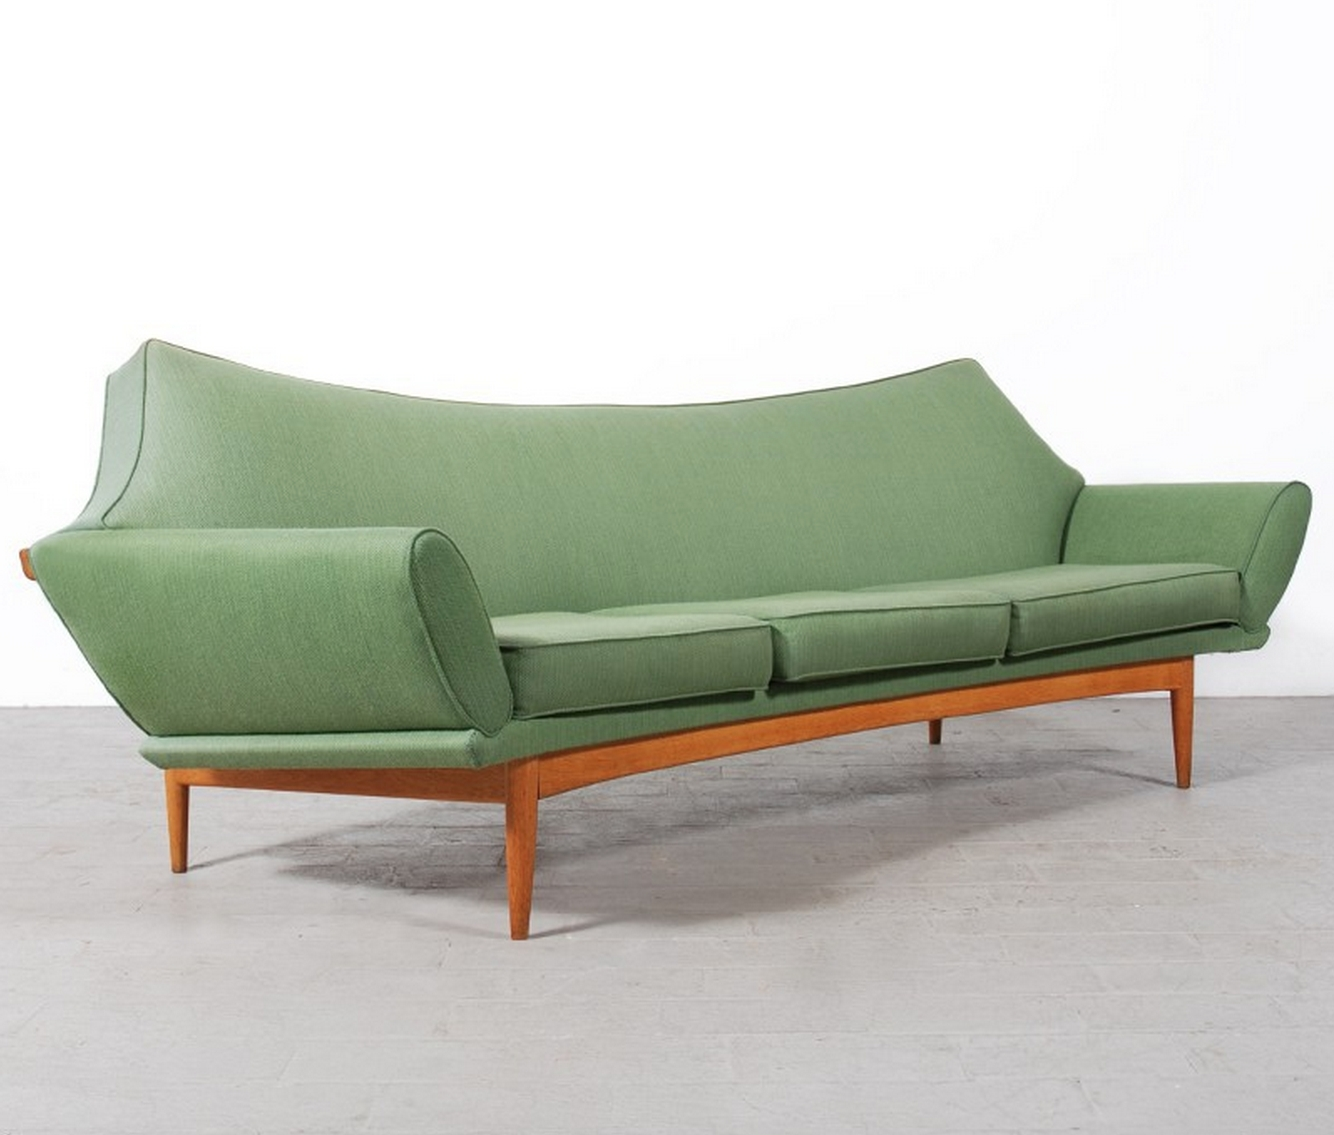 2019 Retro Sofas And Chairs With Regard To Mid Century Retro Vintage Johannes Andersen Teak Sofa Couch Lounge (View 8 of 20)